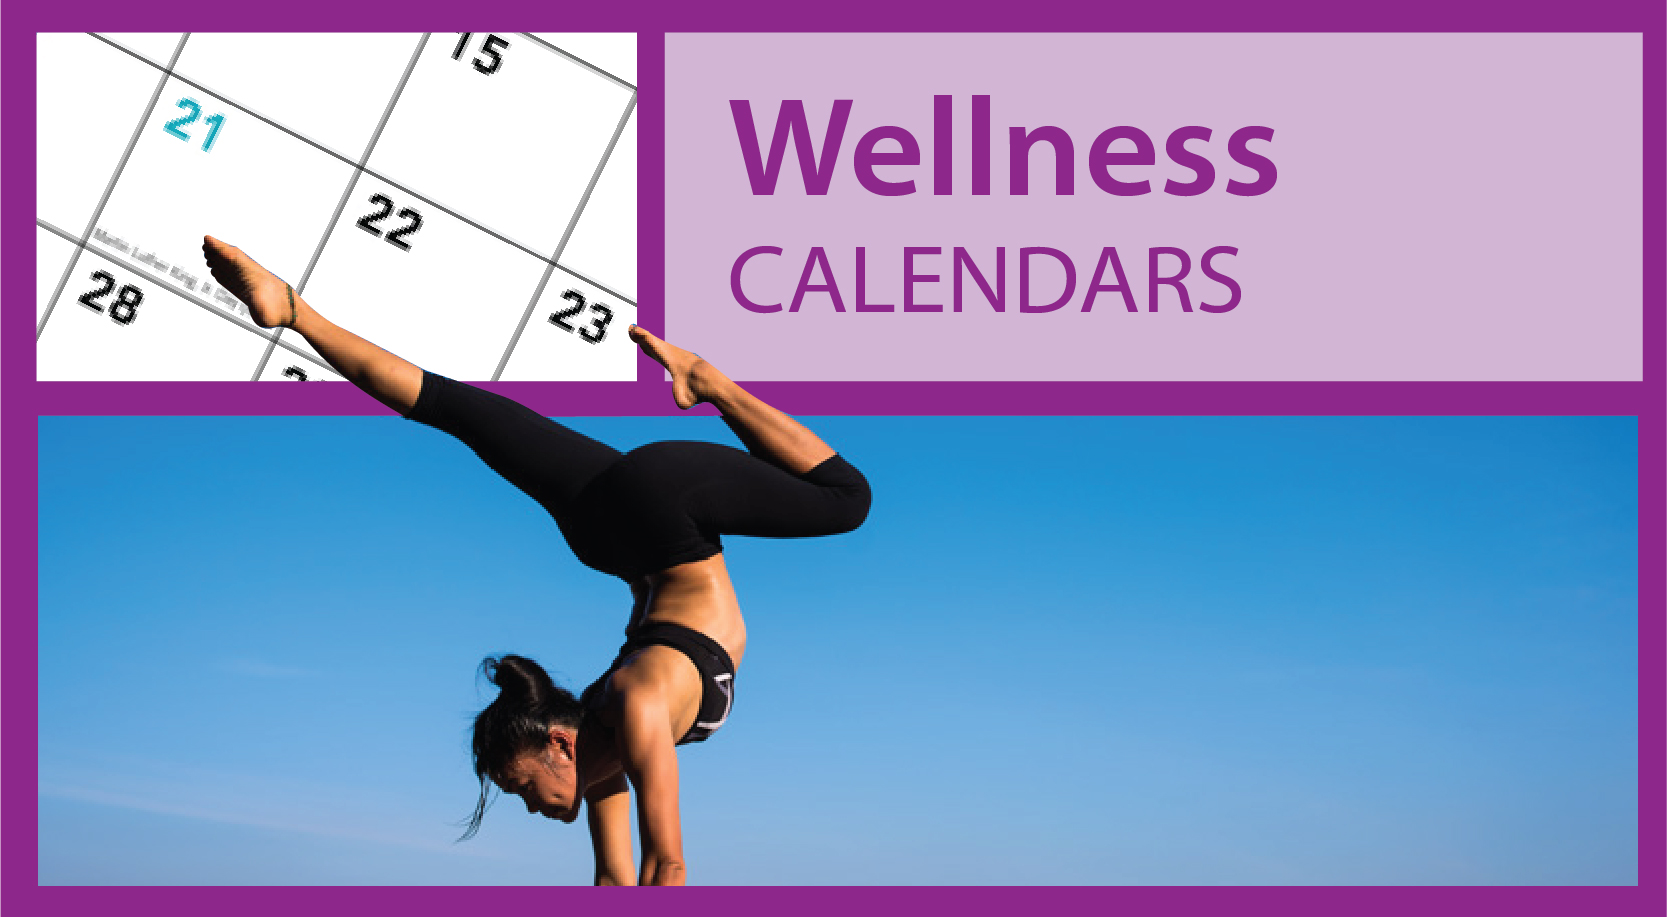 Health Calendars | Safety Calendars